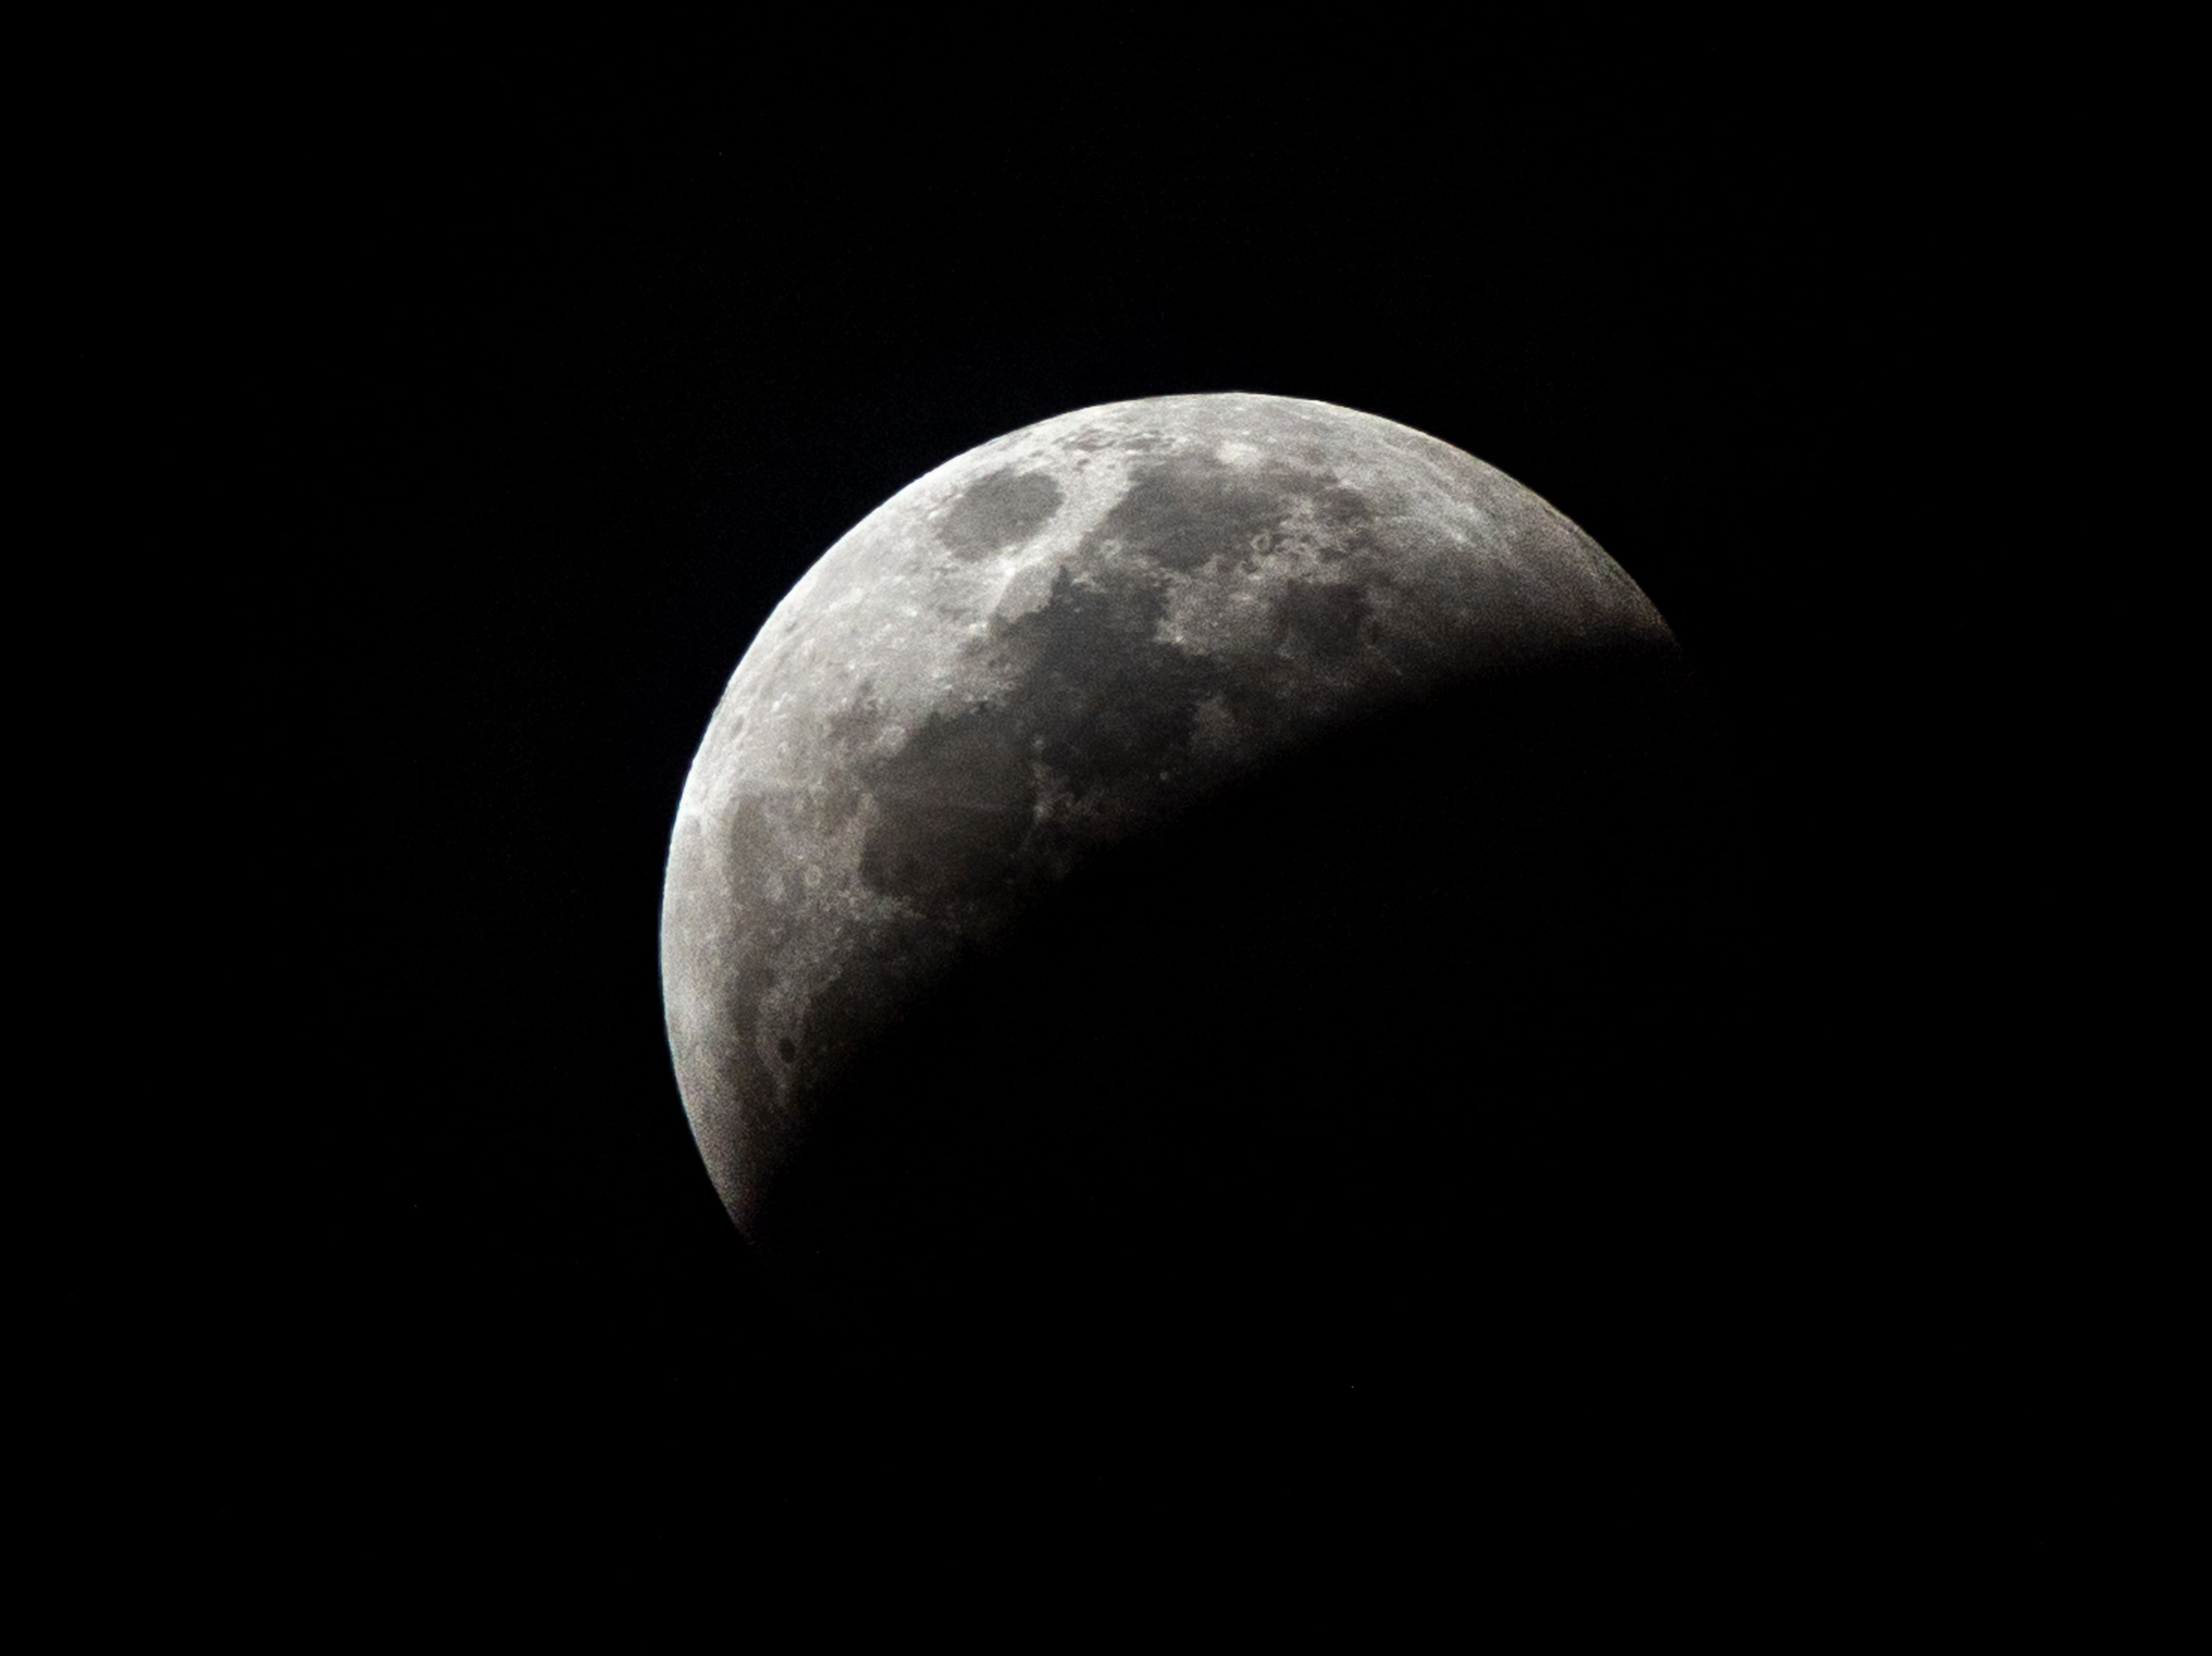 The so-called Super Blood Wolf Moon total lunar eclipse reaches a partial phase where more than half of the Moon is immersed in Earth's unbra, on Sunday January 20, 2019, in Miami, Florida. - The January 21 total lunar eclipse will be the last one until May 2021, and the last one visible from the United States until 2022. (Photo by Gaston De Cardenas / AFP)GASTON DE CARDENAS/AFP/Getty Images